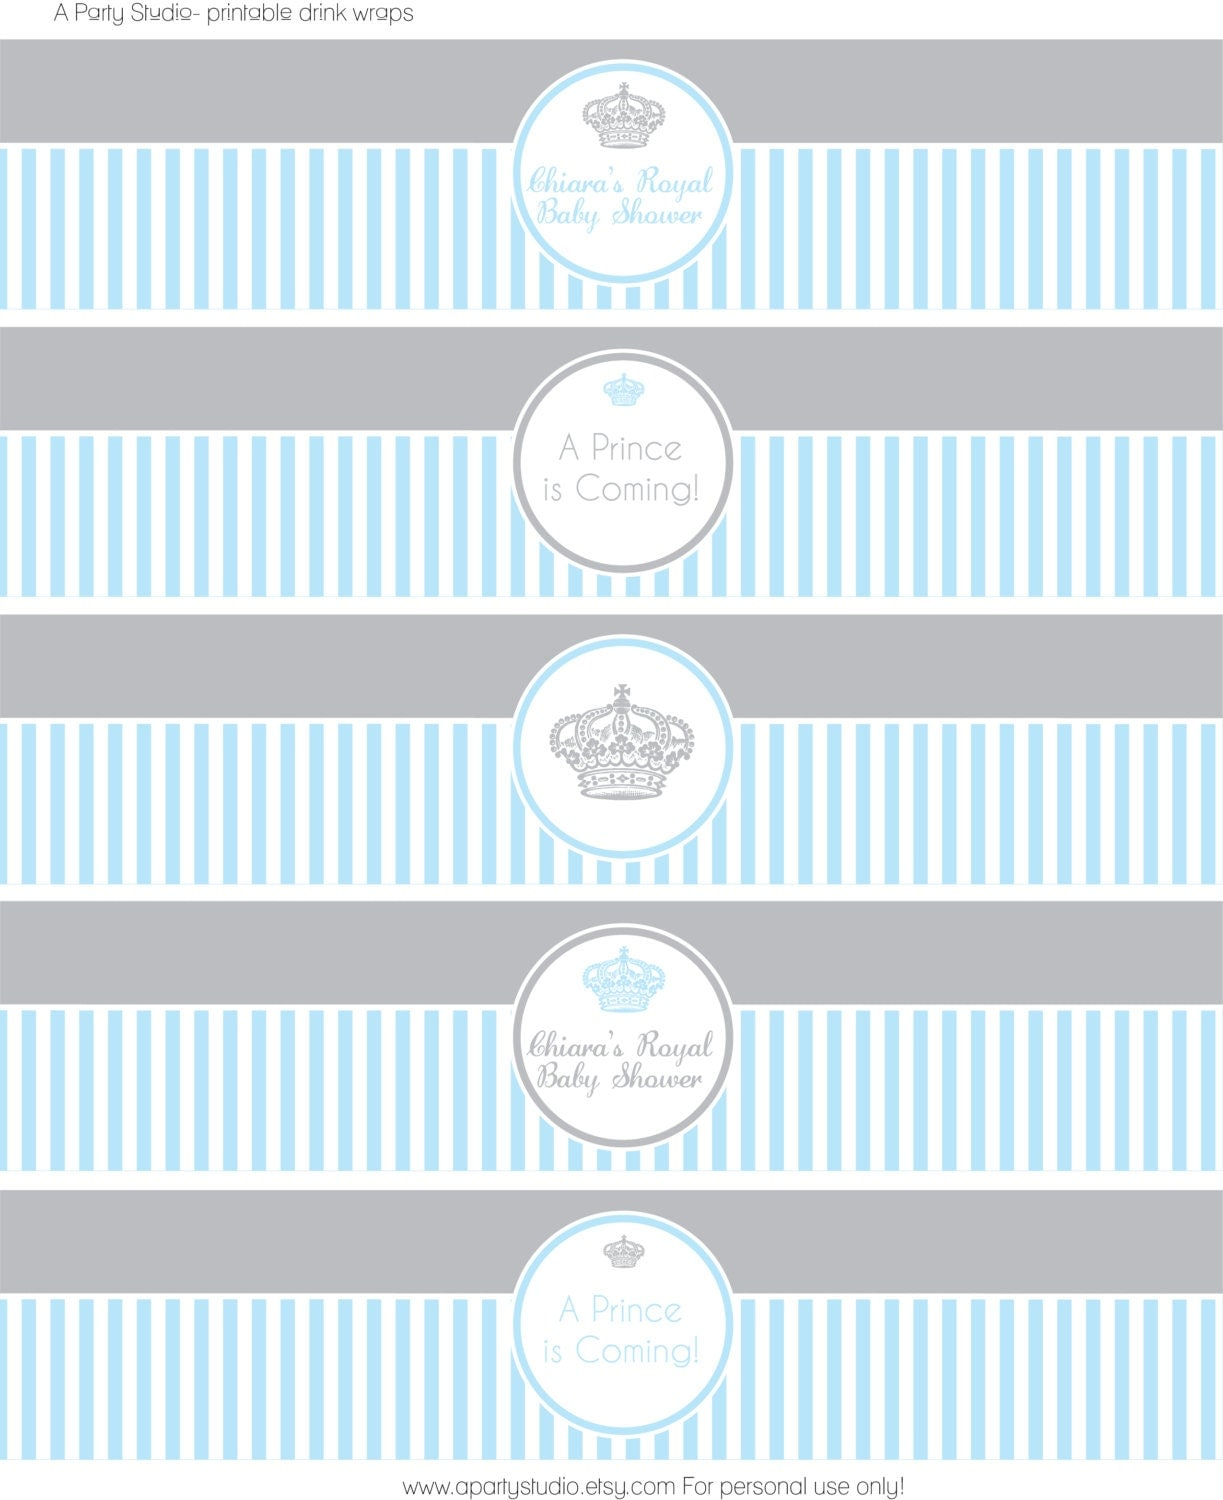 ... Baby Shower in Blue and Grey- Water Bottle Wrappers- Print your own